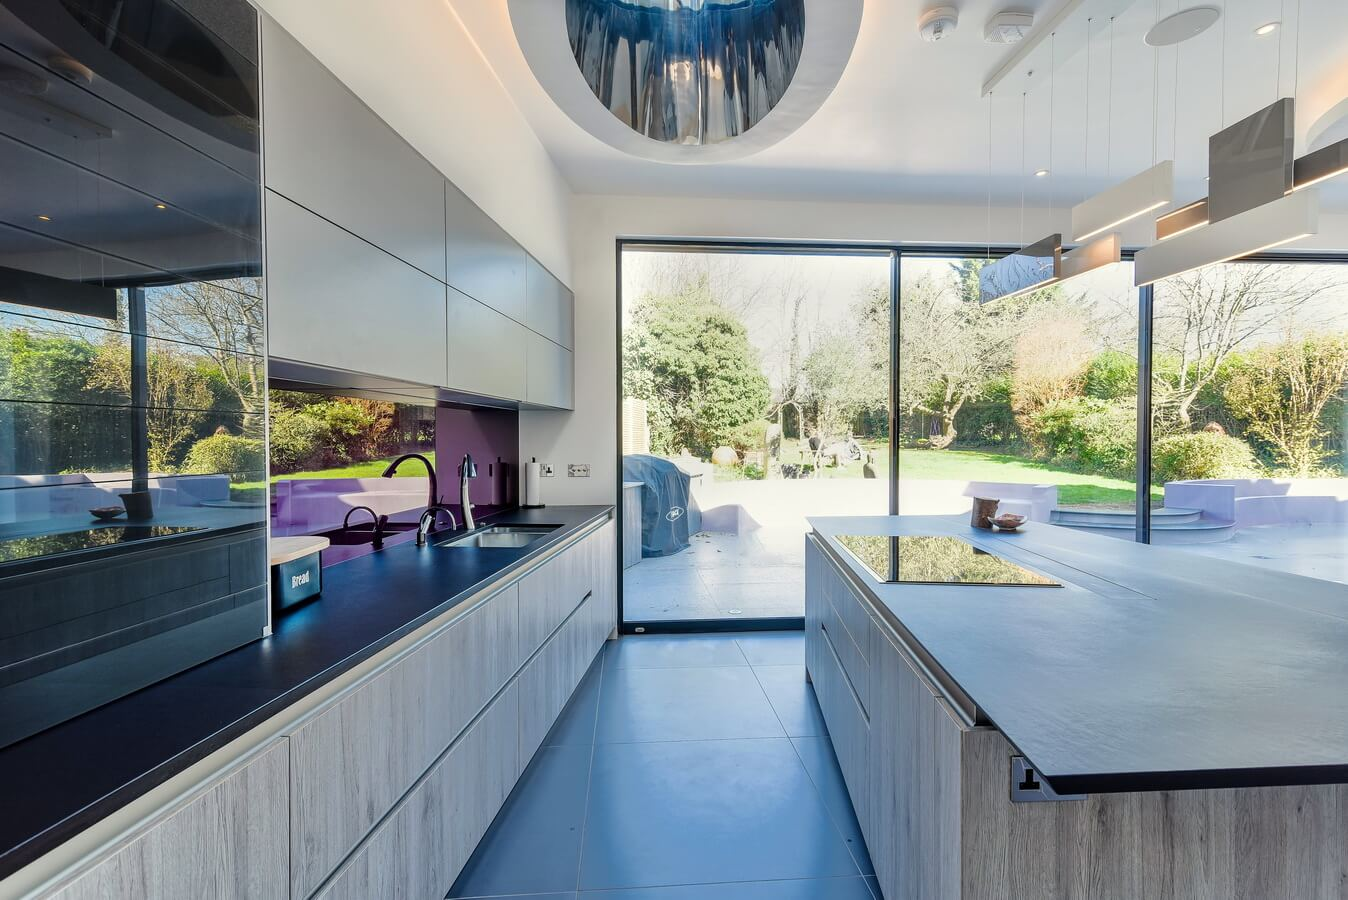 Schuller & Nobilia Projects — Moiety Kitchens